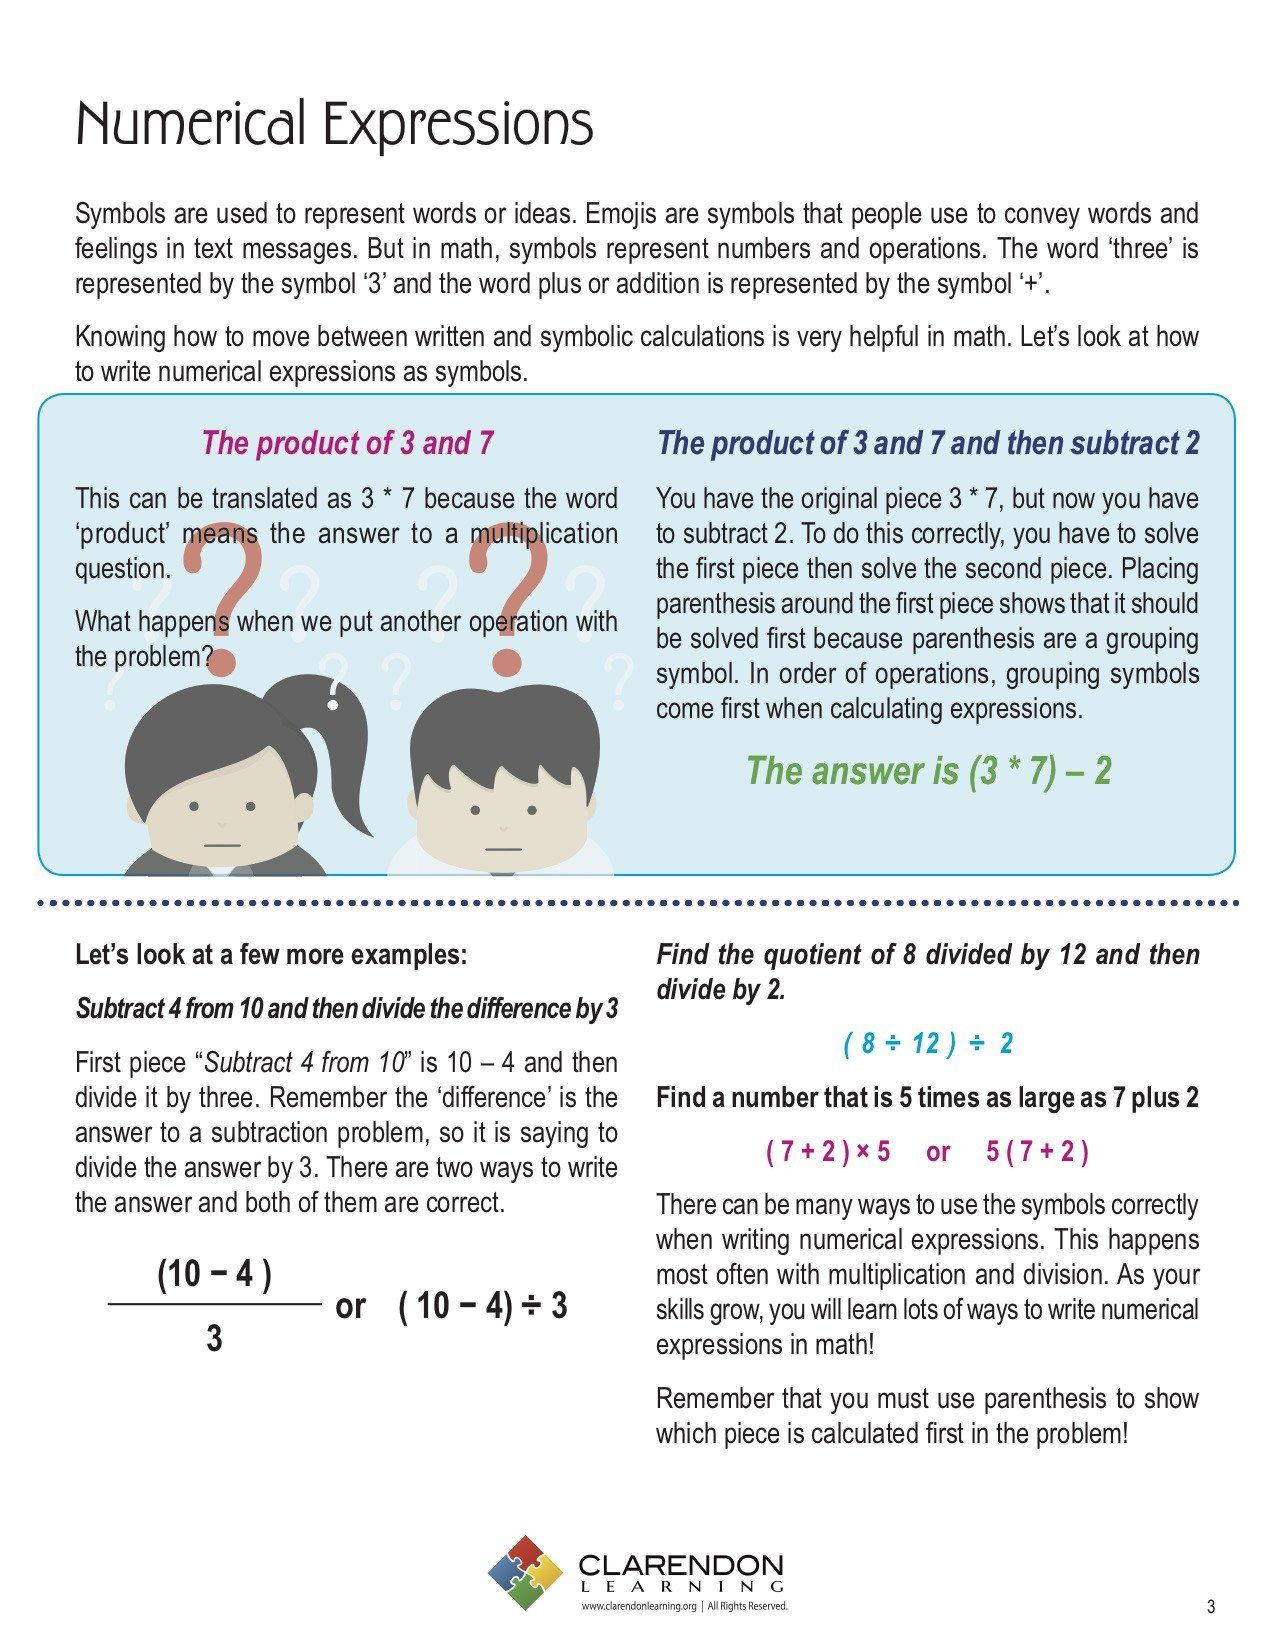 Writing Numerical Expressions Worksheet Numerical